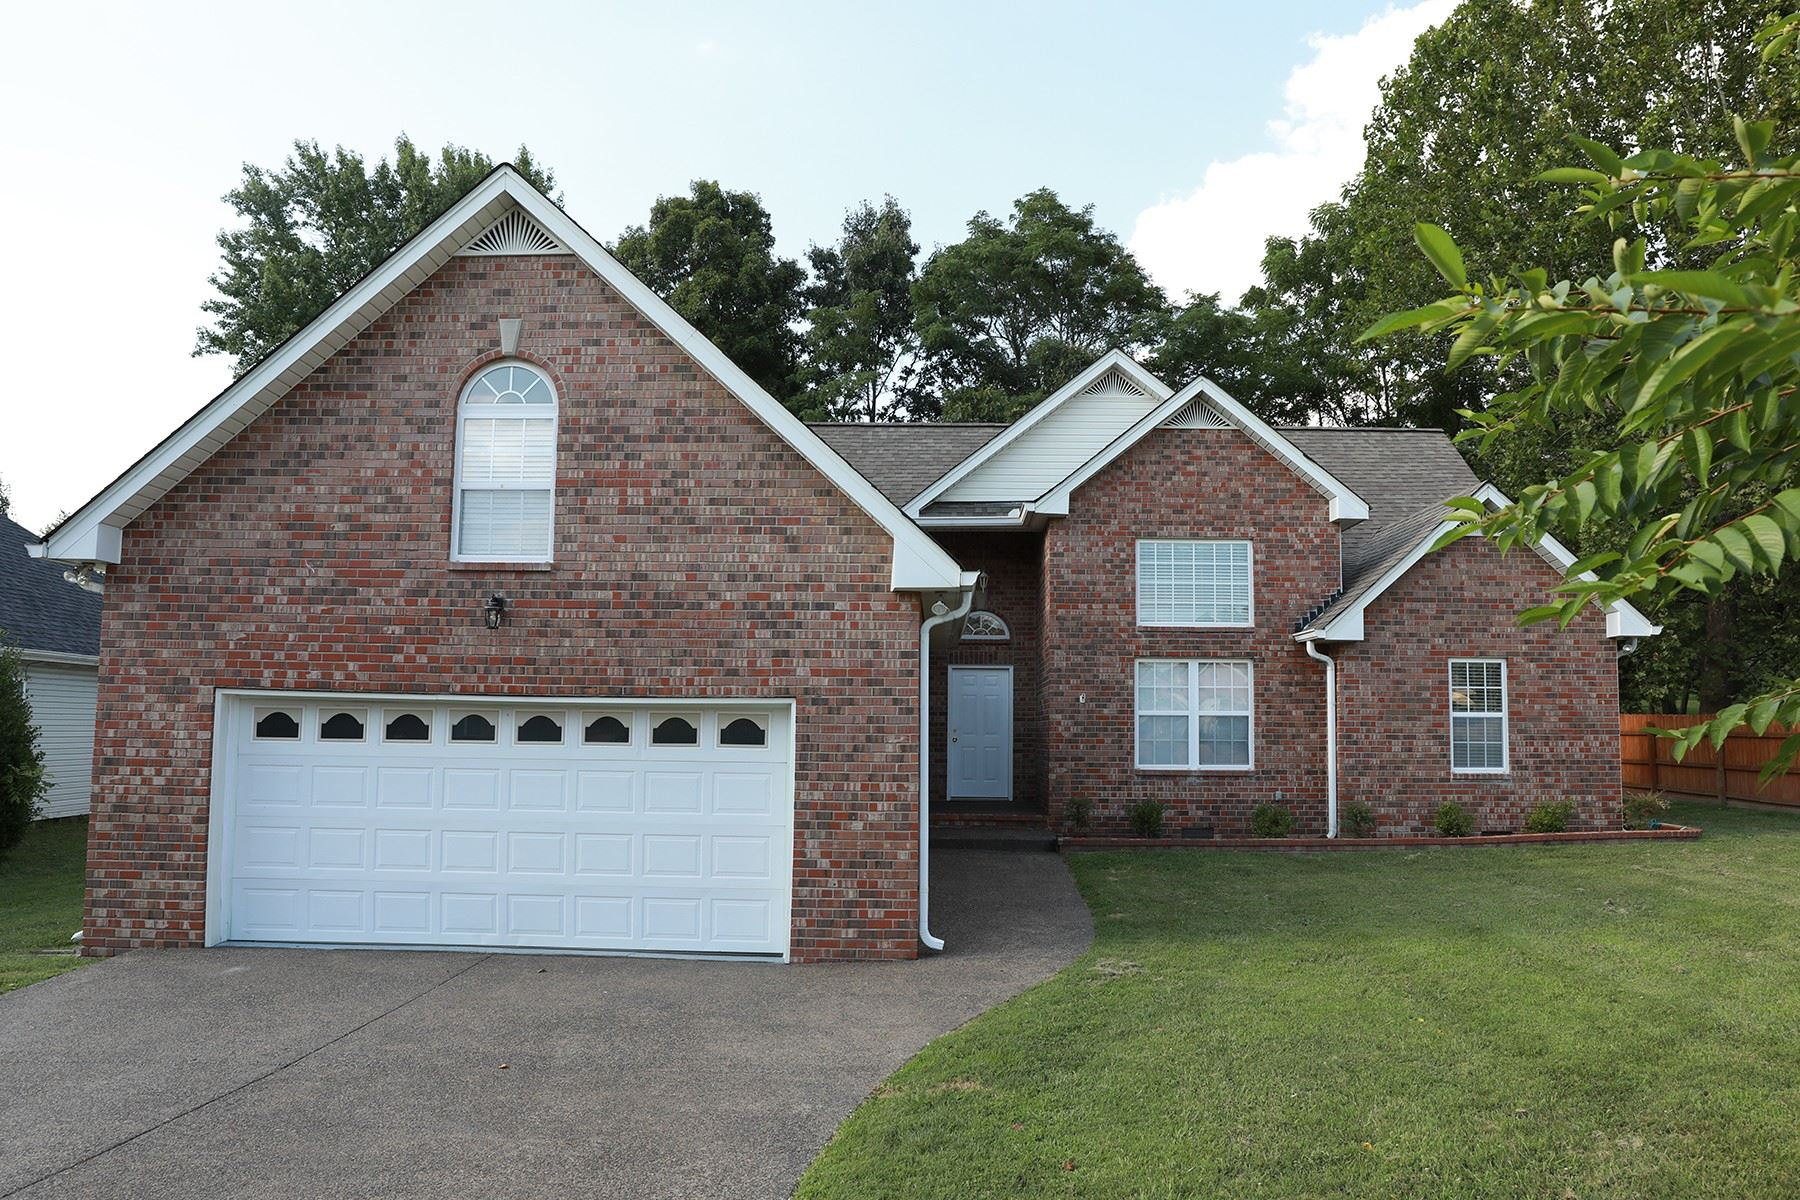 105 Copperfield Ct, White House, TN 37188 - MLS#: 2278970